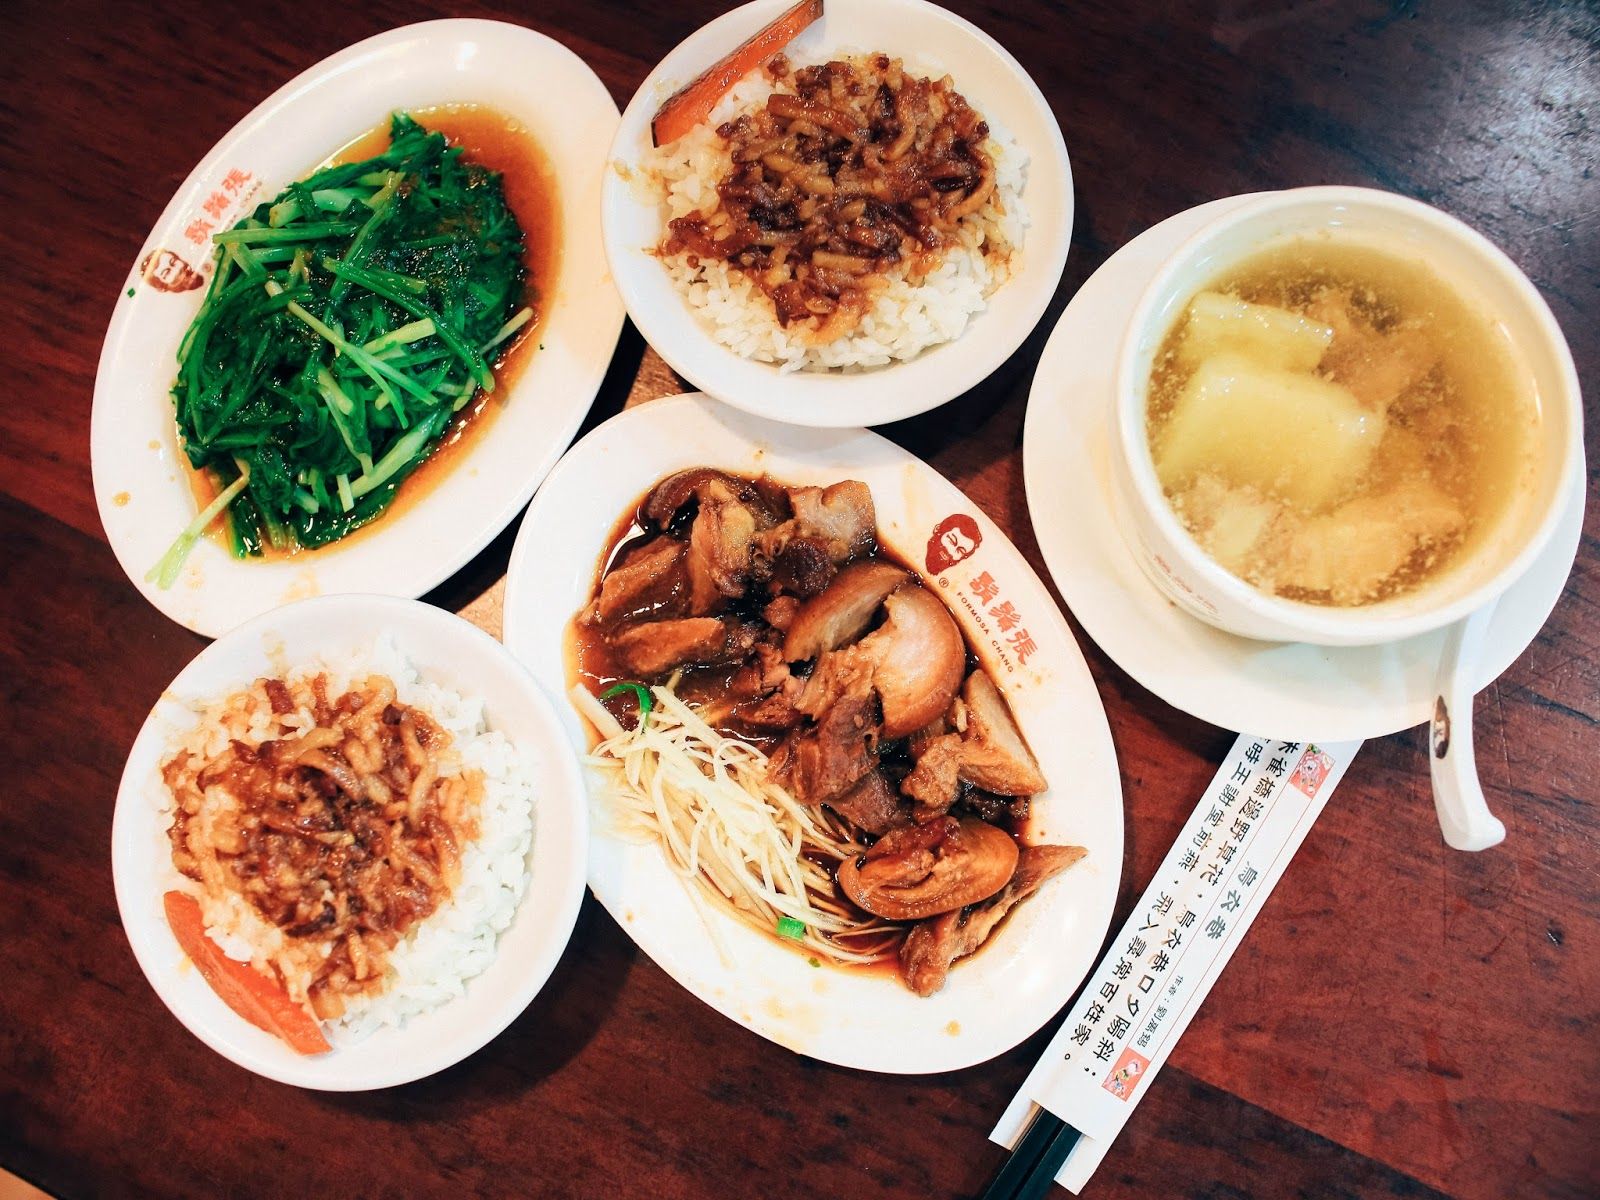 formosa chang, braised pork rice, taiwan, eats, recommendation